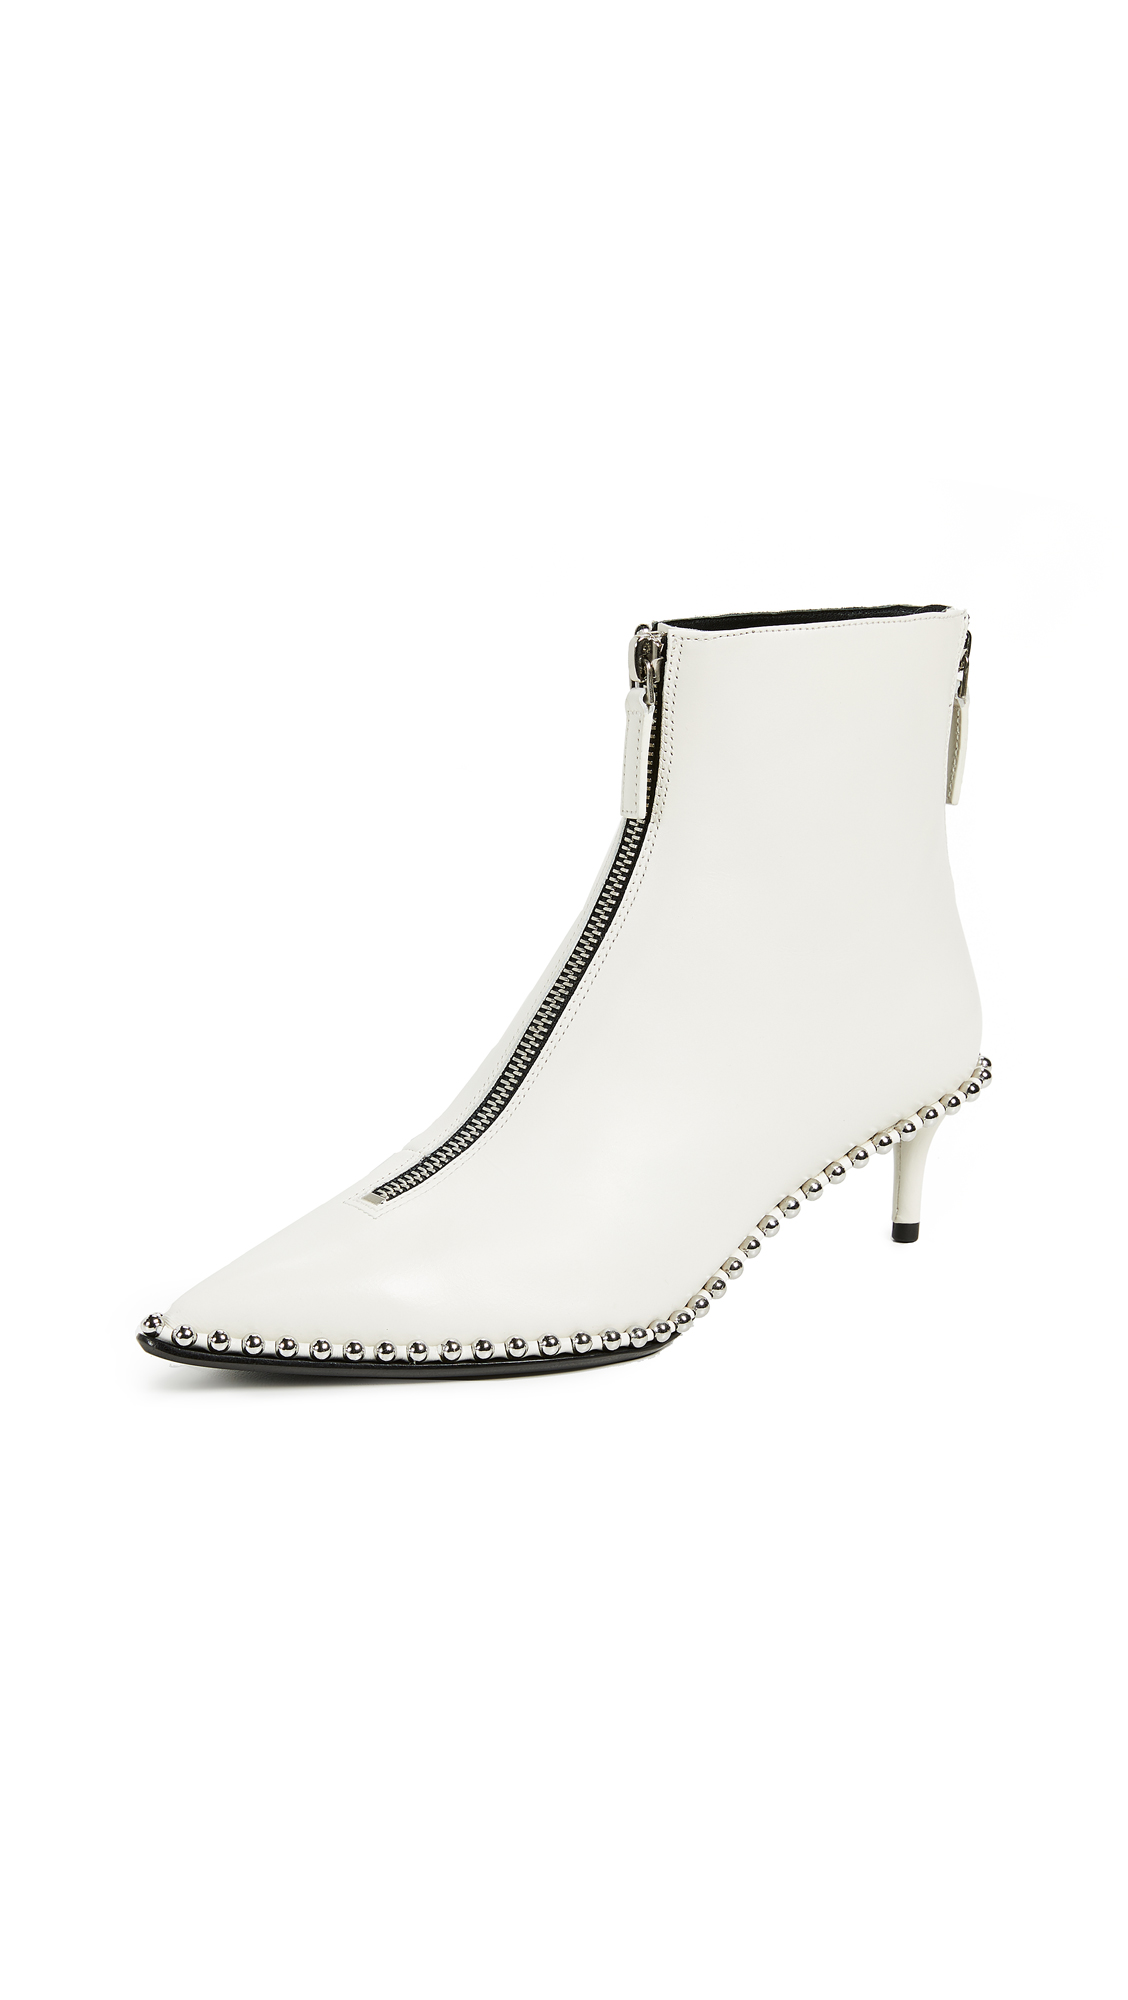 Alexander Wang Eri Low Heel Booties - White